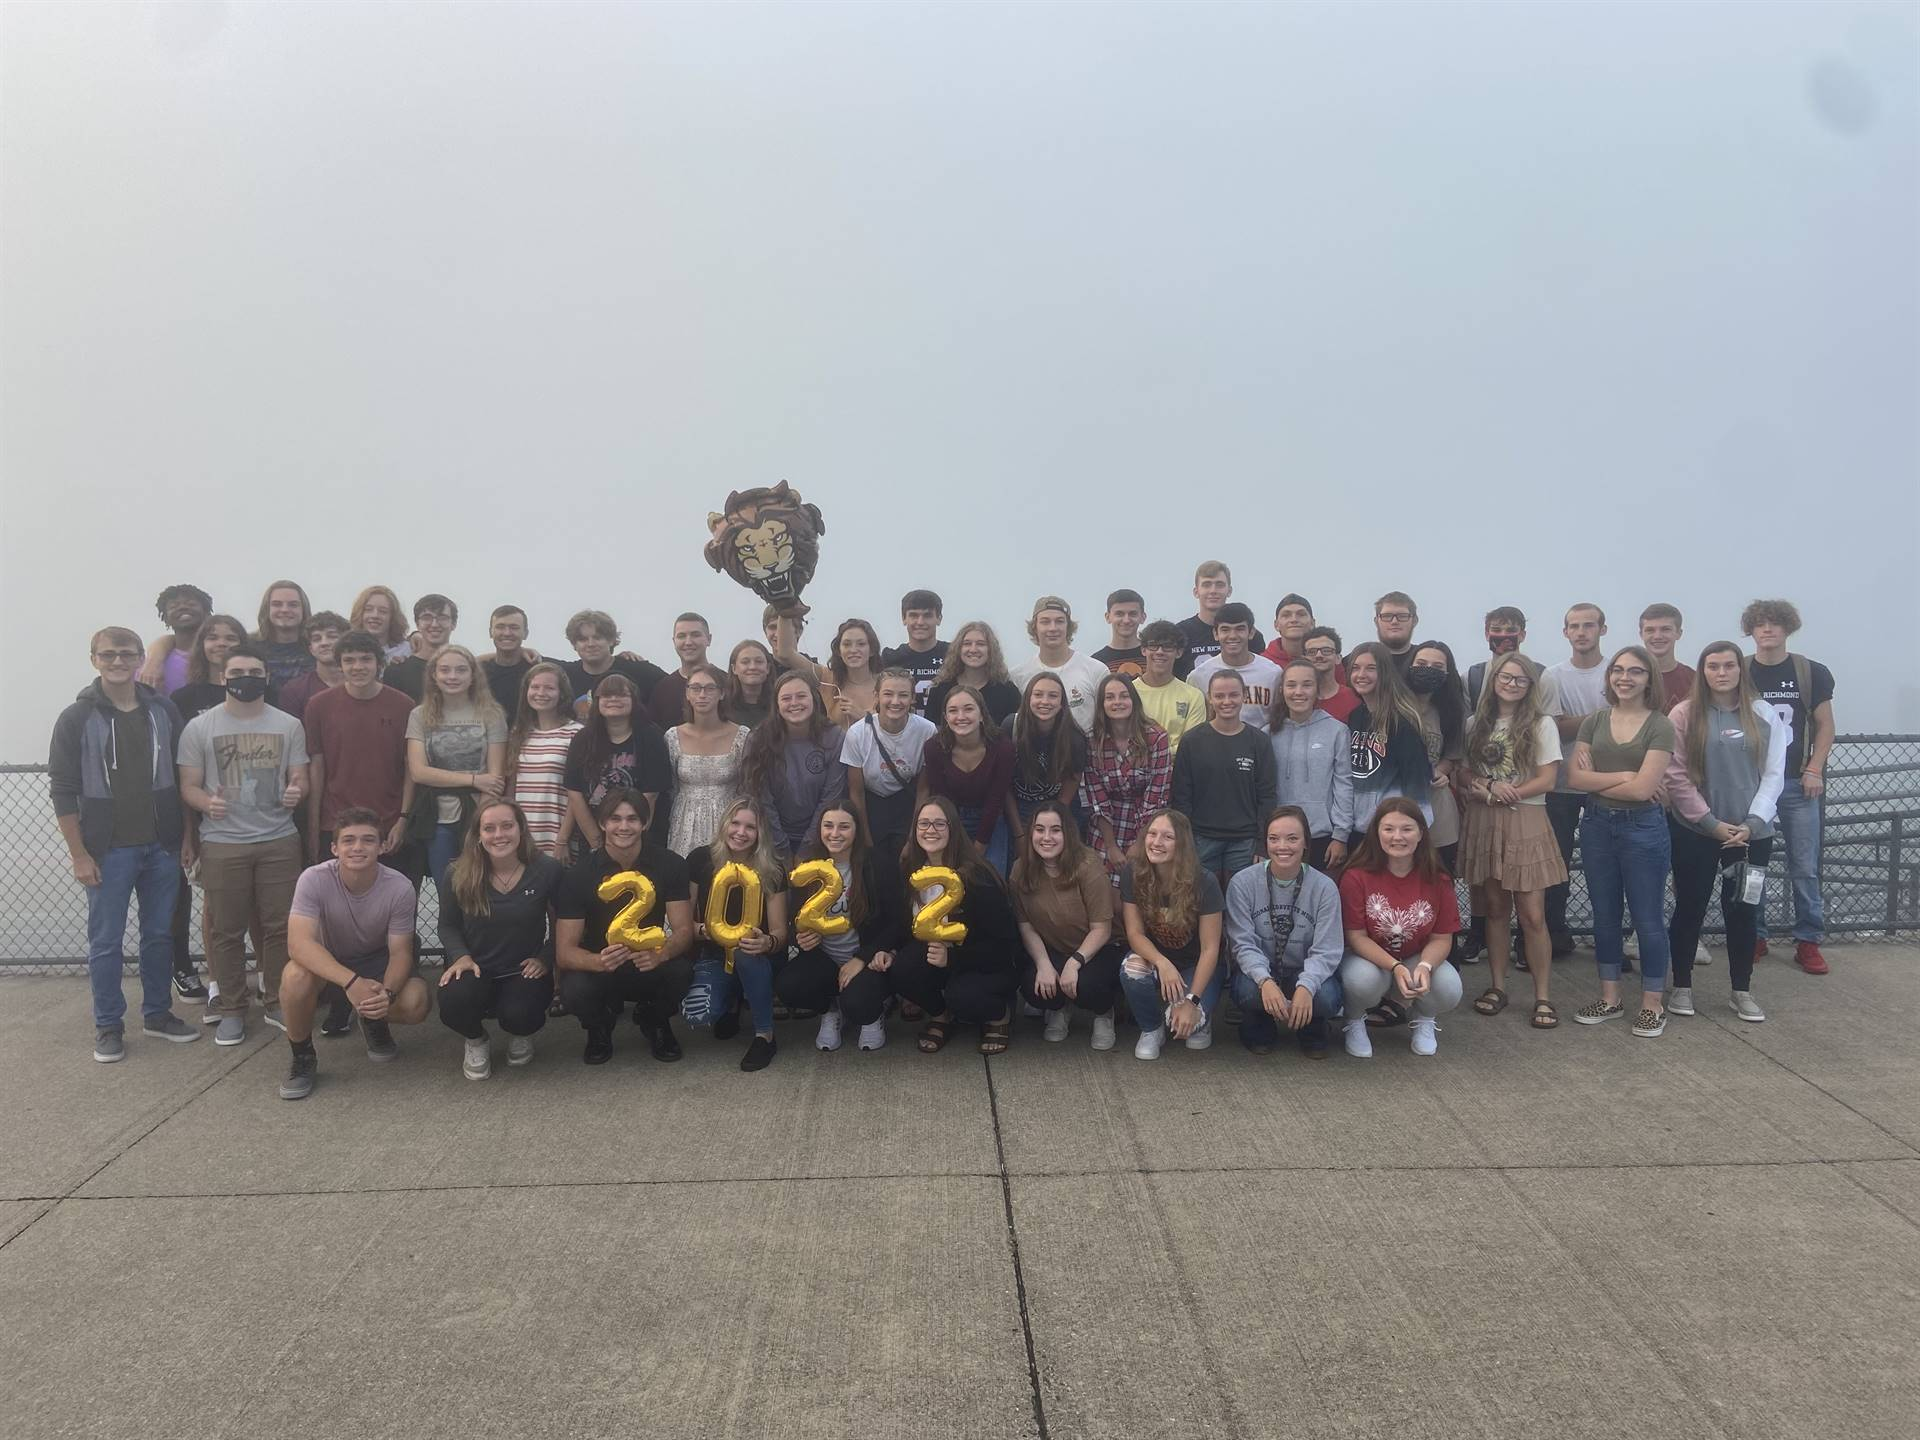 Senior Sunrise Celebration for class of 2022 which is pictured here